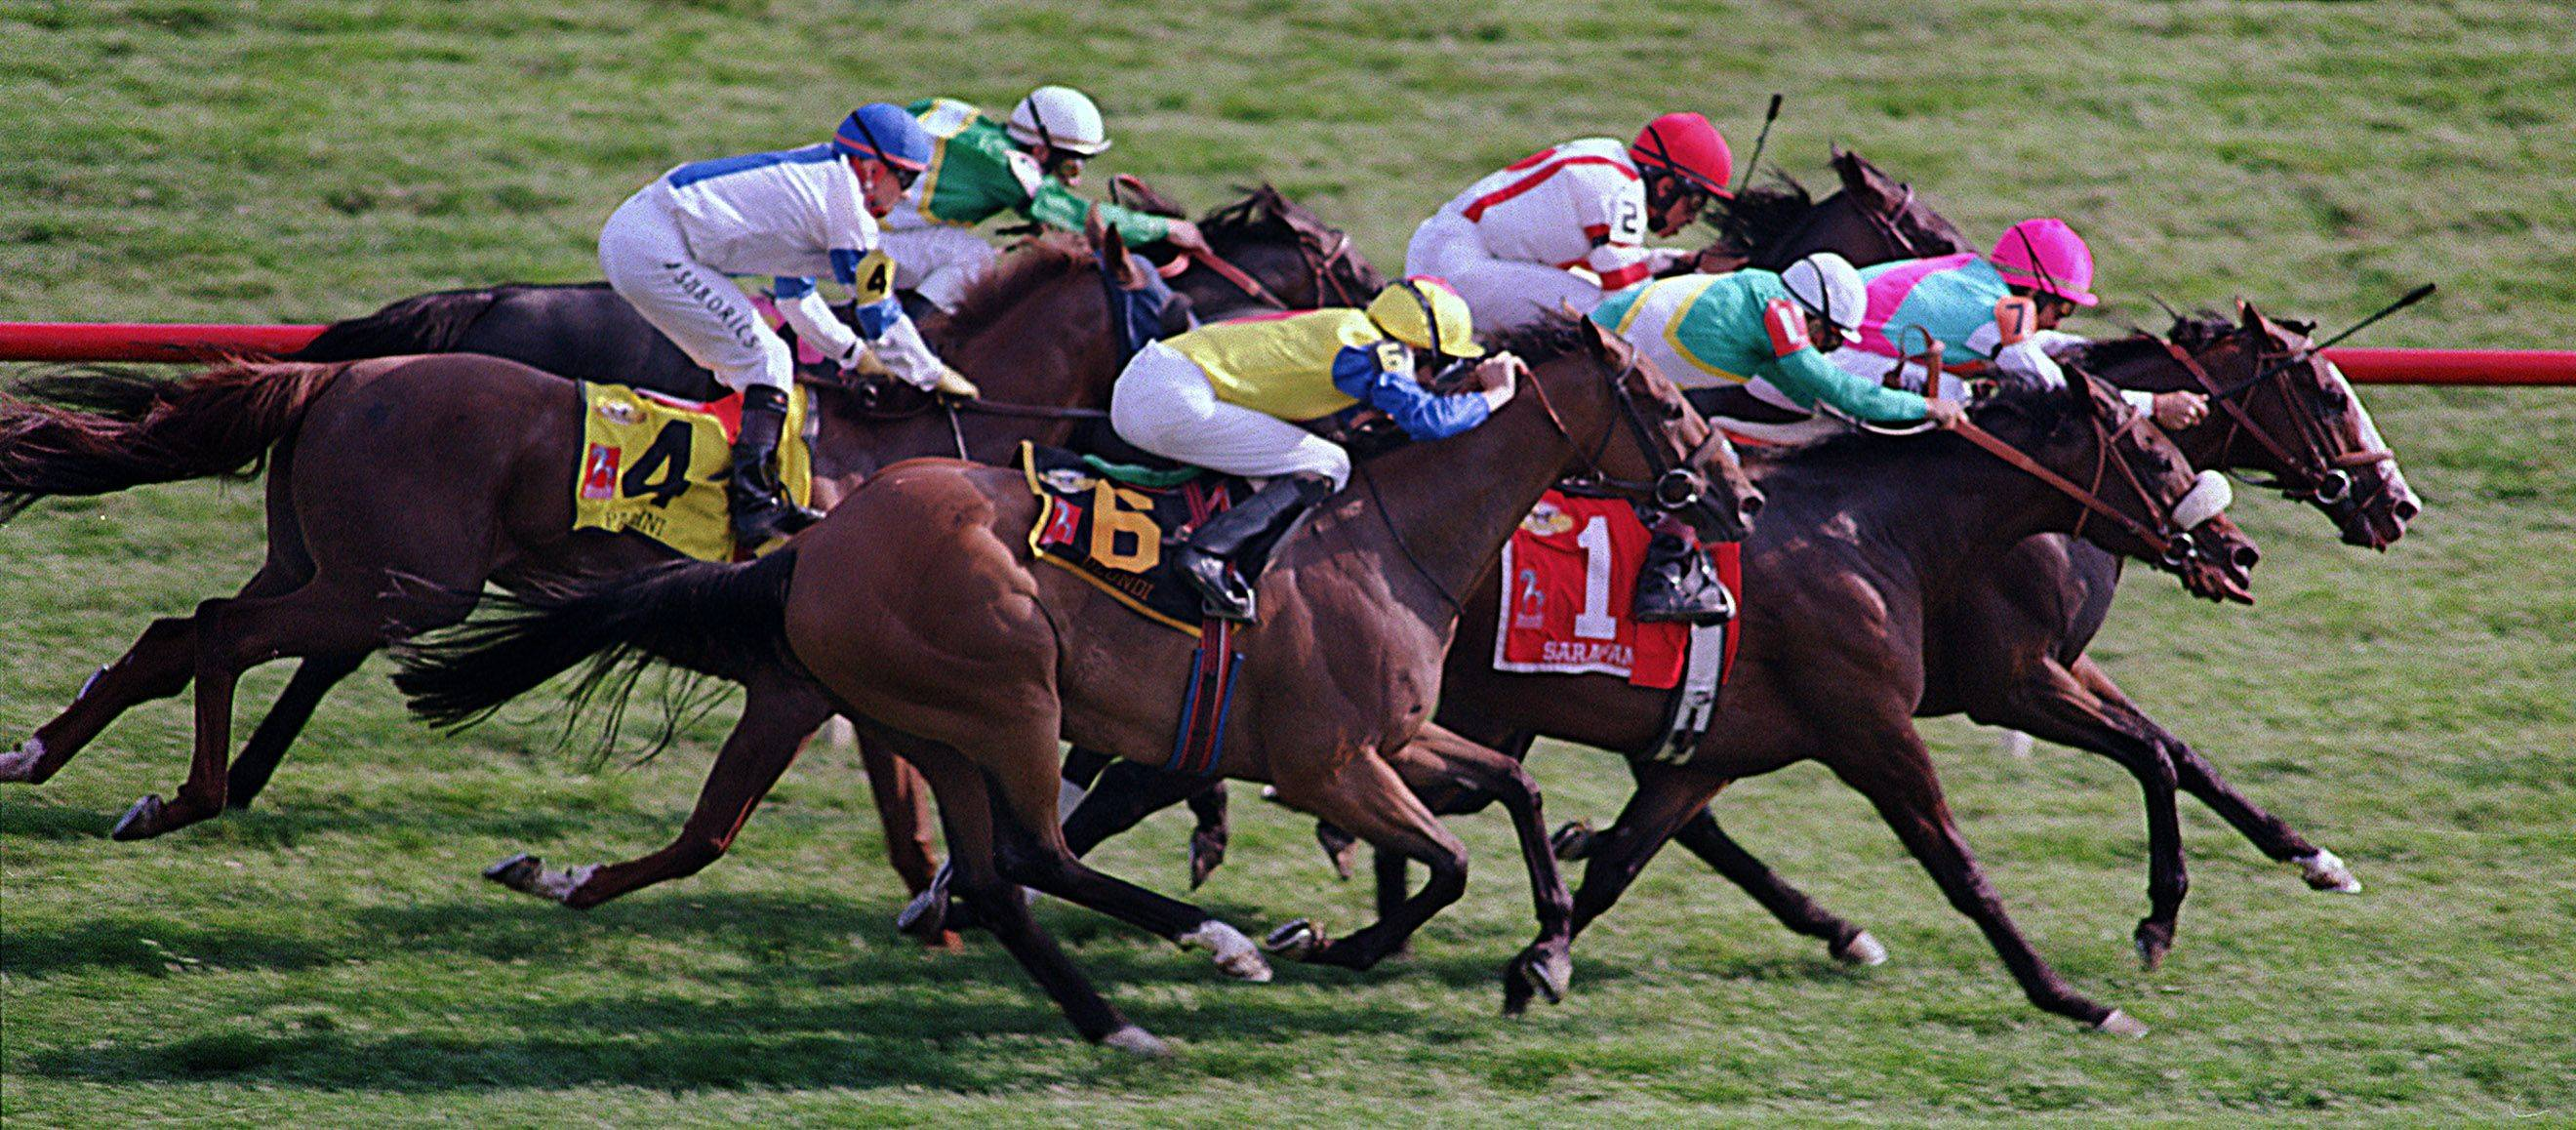 A proposal to expand gambling, including adding slots at Arlington Park, was rejected in a House committee Wednesday.